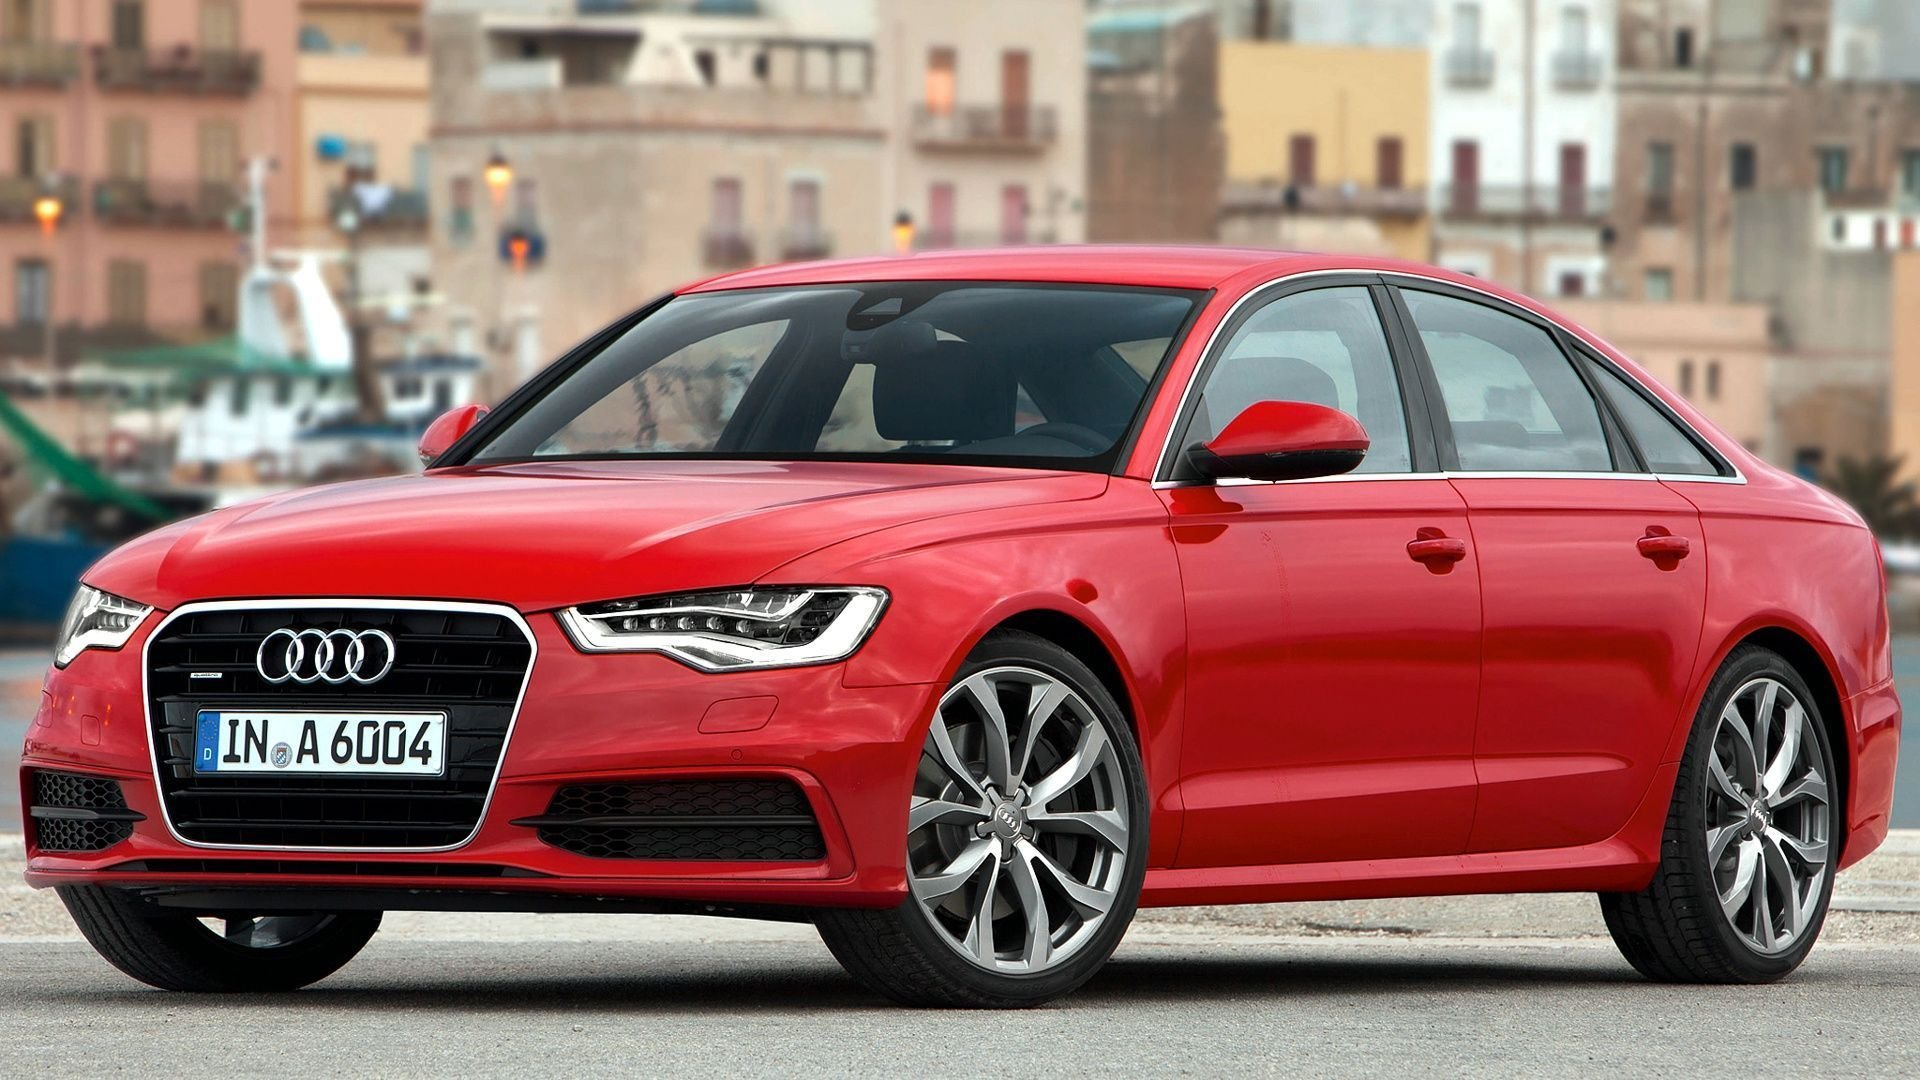 Latest Tag For Audi A6 2004 Wallpaper Home Audi A6 4 2 Quattro Free Download